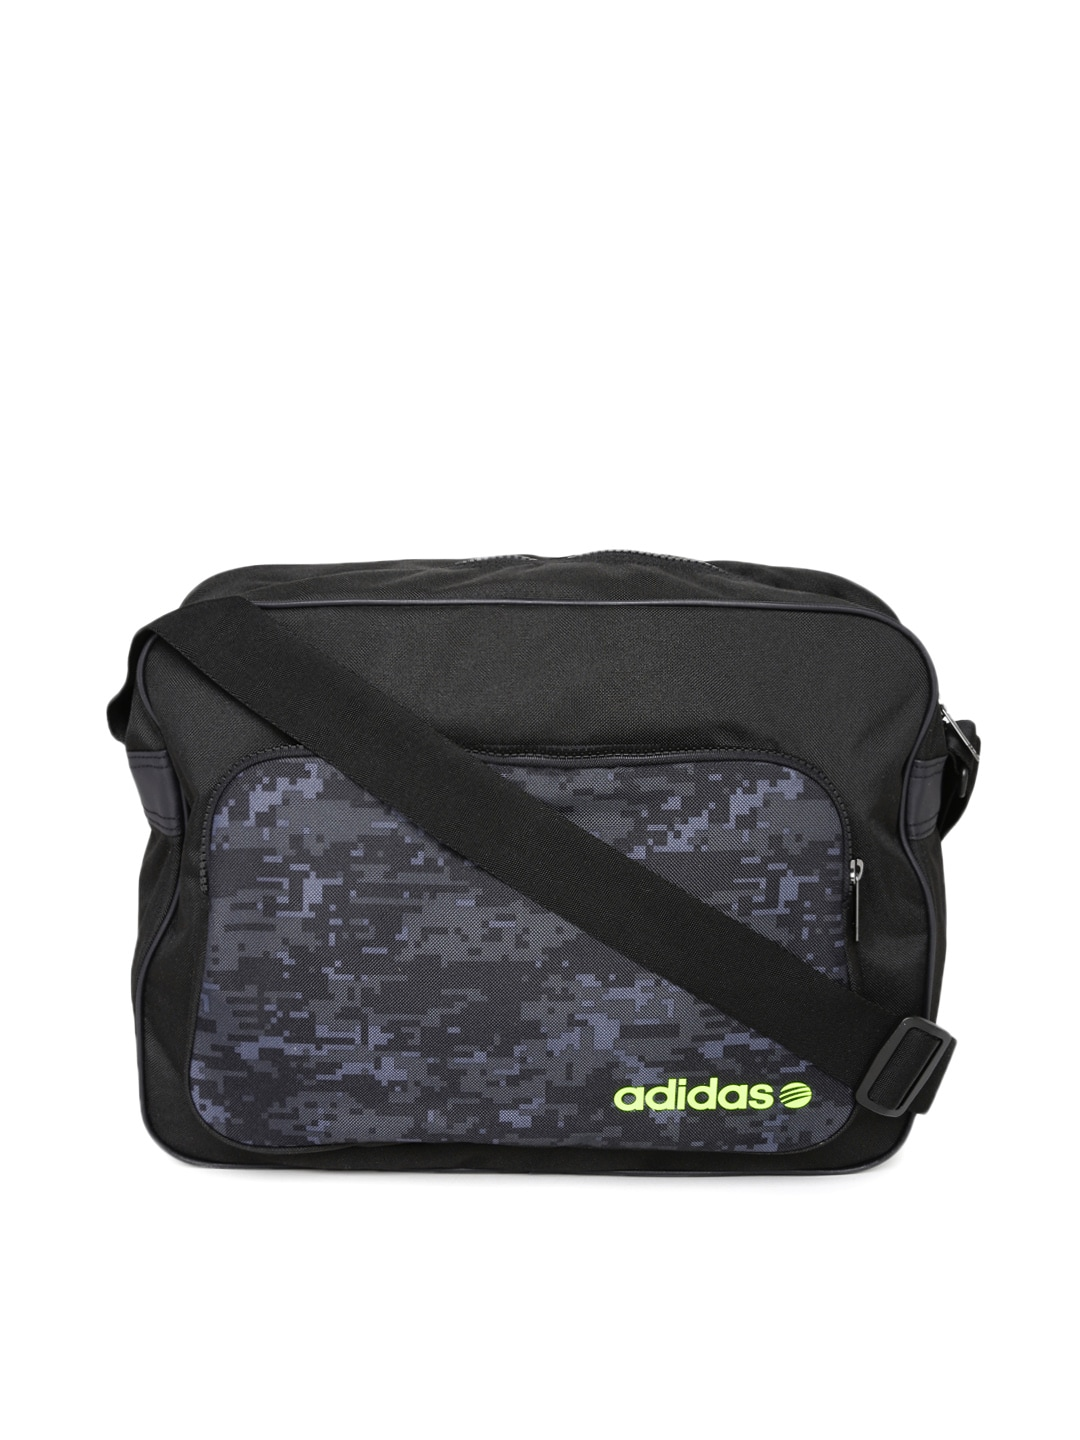 5ea87e65af57 Buy adidas neo bag   OFF50% Discounted